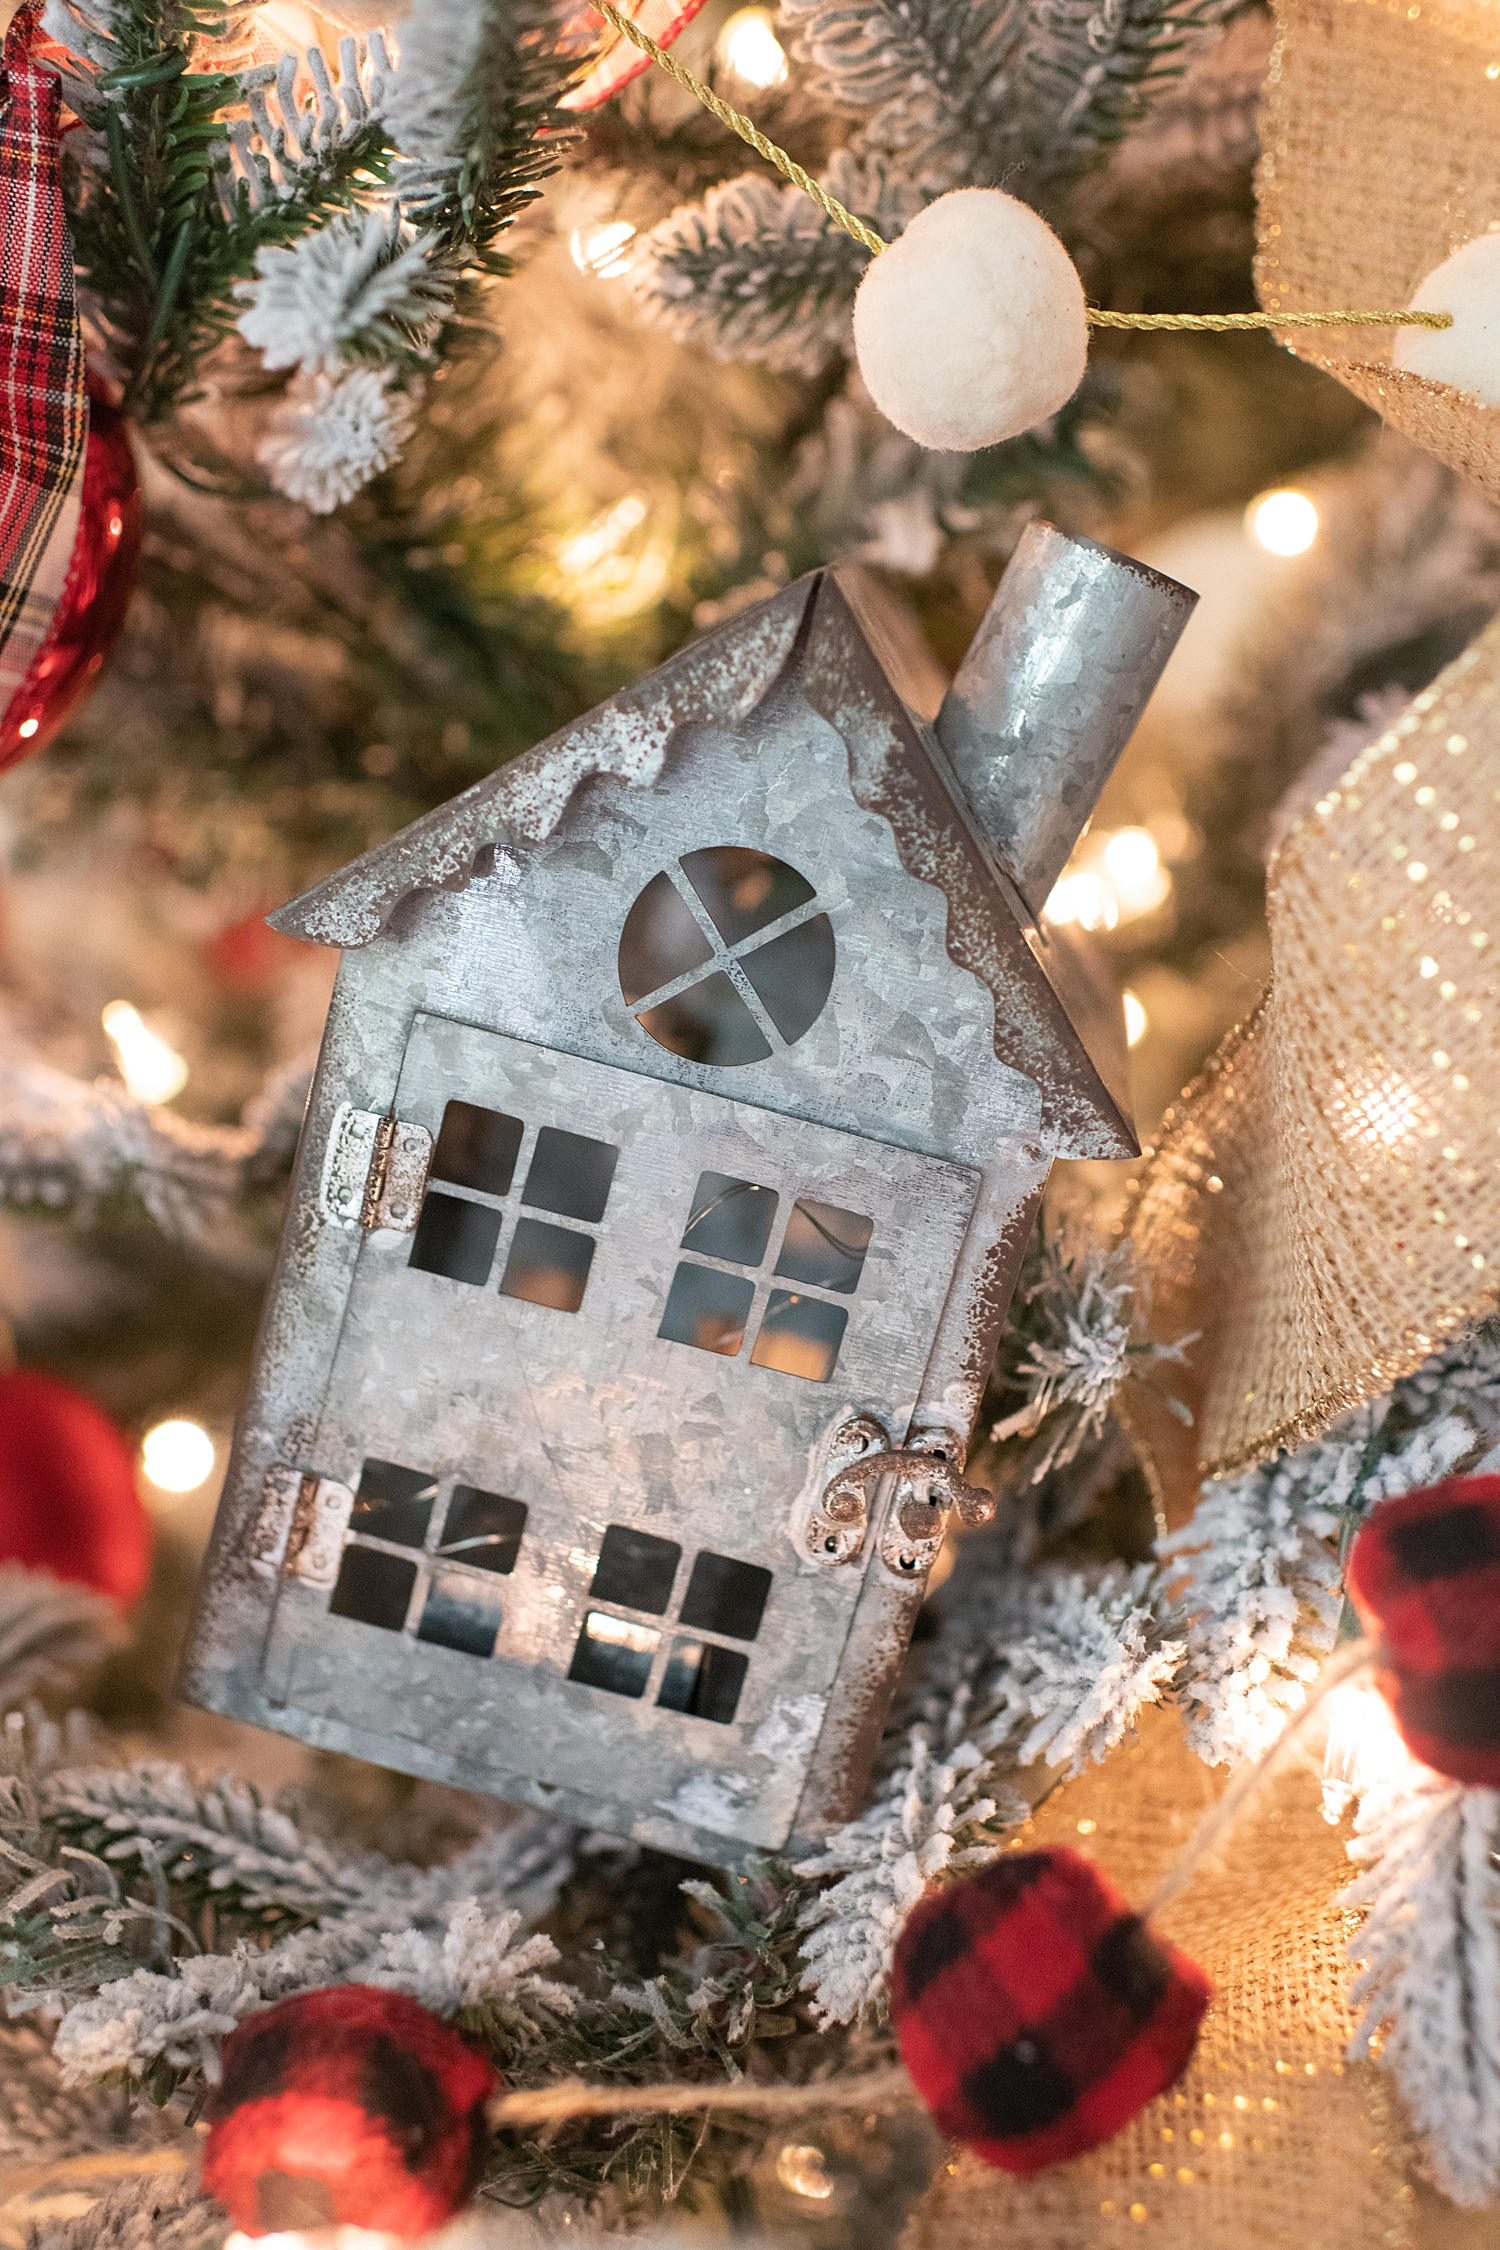 """Holiday Pjs & Top Macy's Christmas Gifts featured by top Houston life and style blog, Fancy Ashley"""" image of a Christmas ornament available at Macy's"""